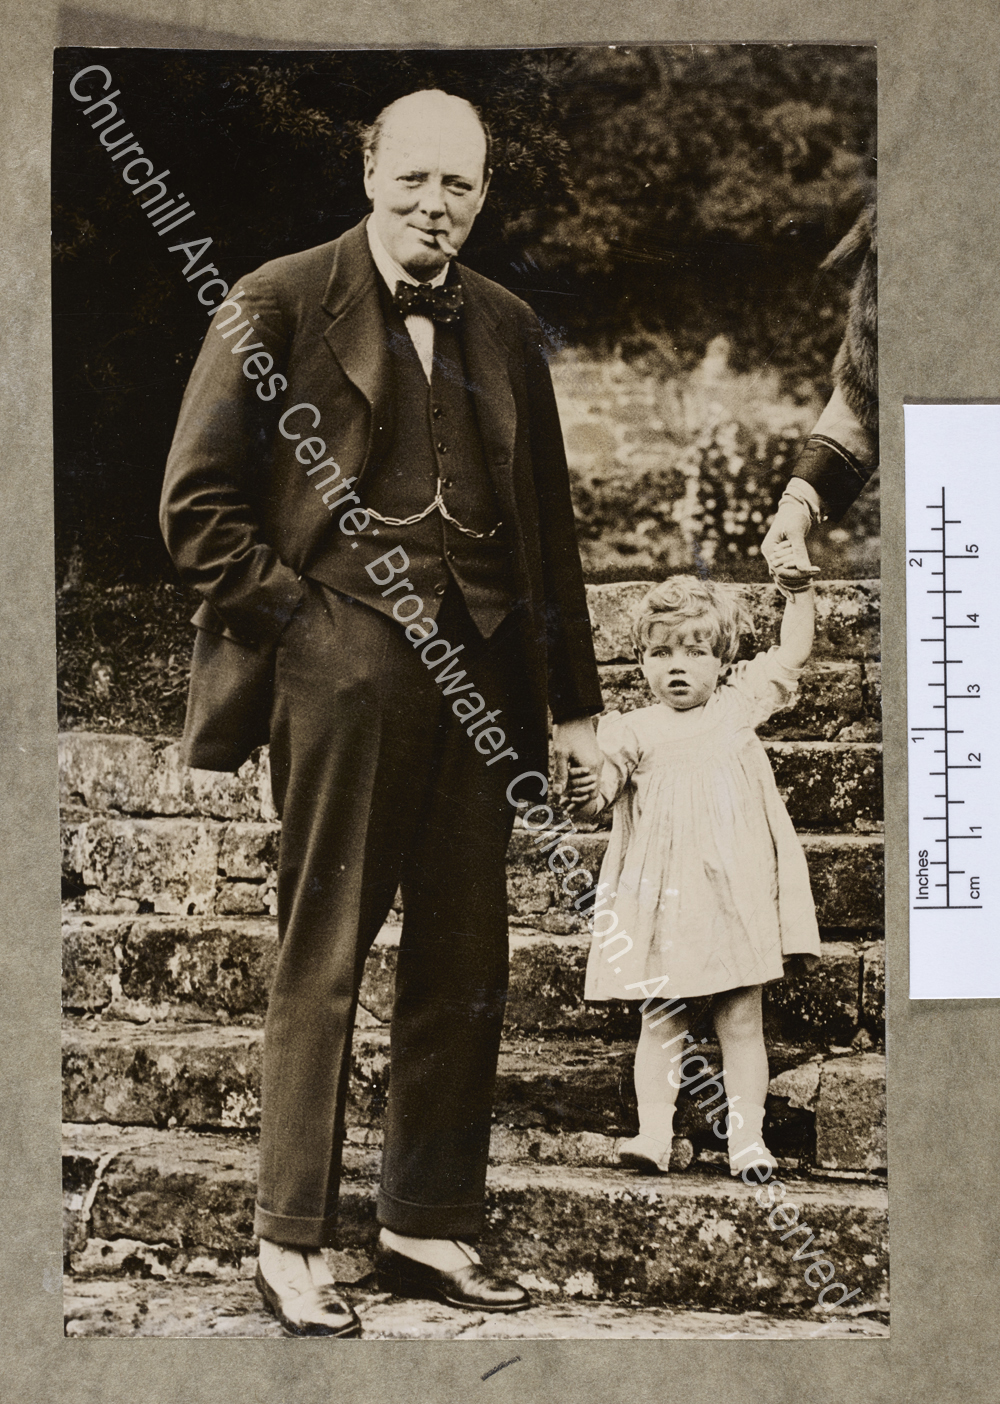 Photograph of WSC standing on the steps of the garden at Chartwell [Kent] holding the hand of Mary Churchill [later Mary Soames] as a toddler.  WSC